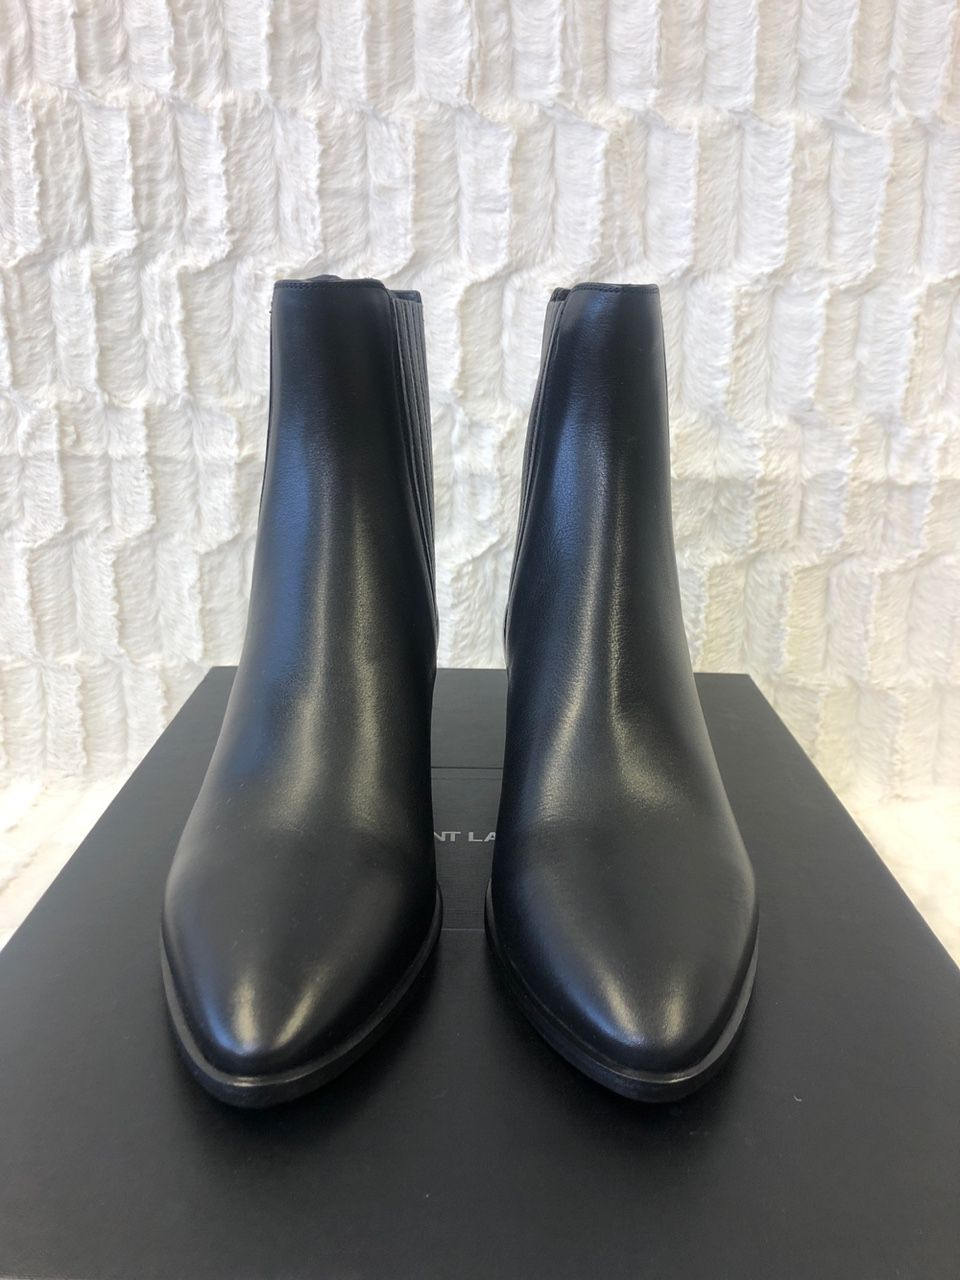 Saint Laurent West 45 Chelsea Boots Nero A0138359